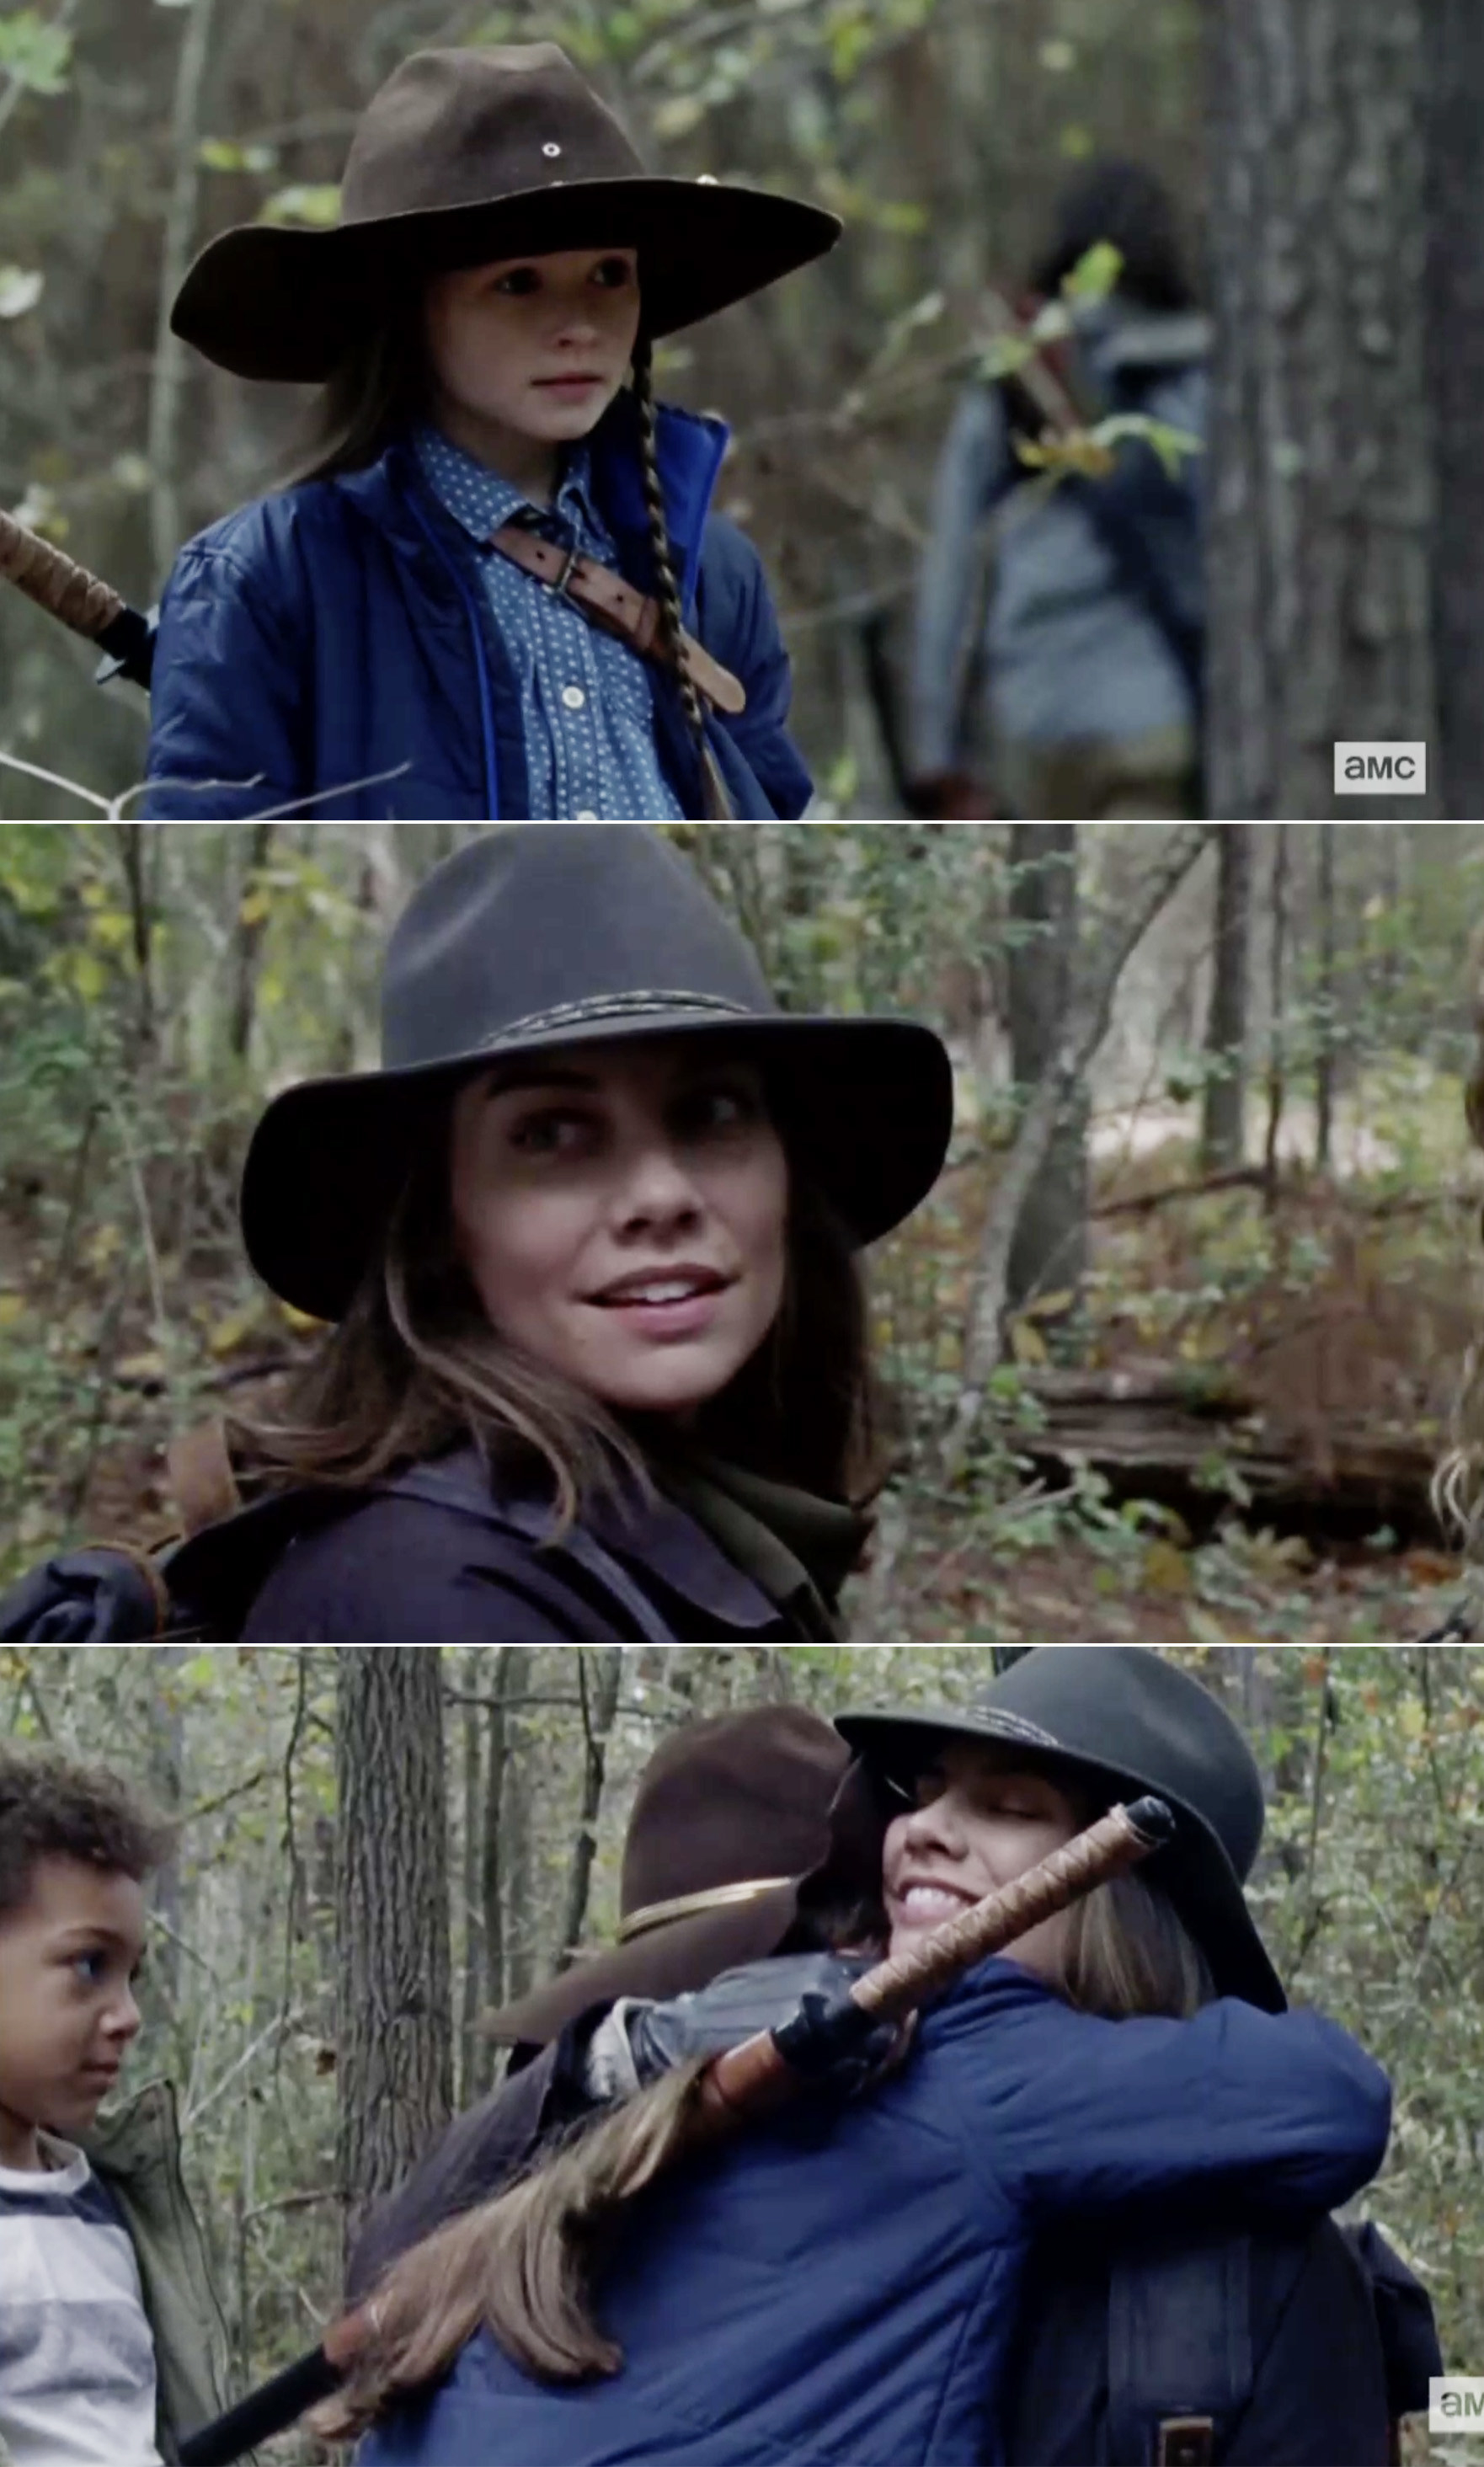 Maggie and Judith hugging